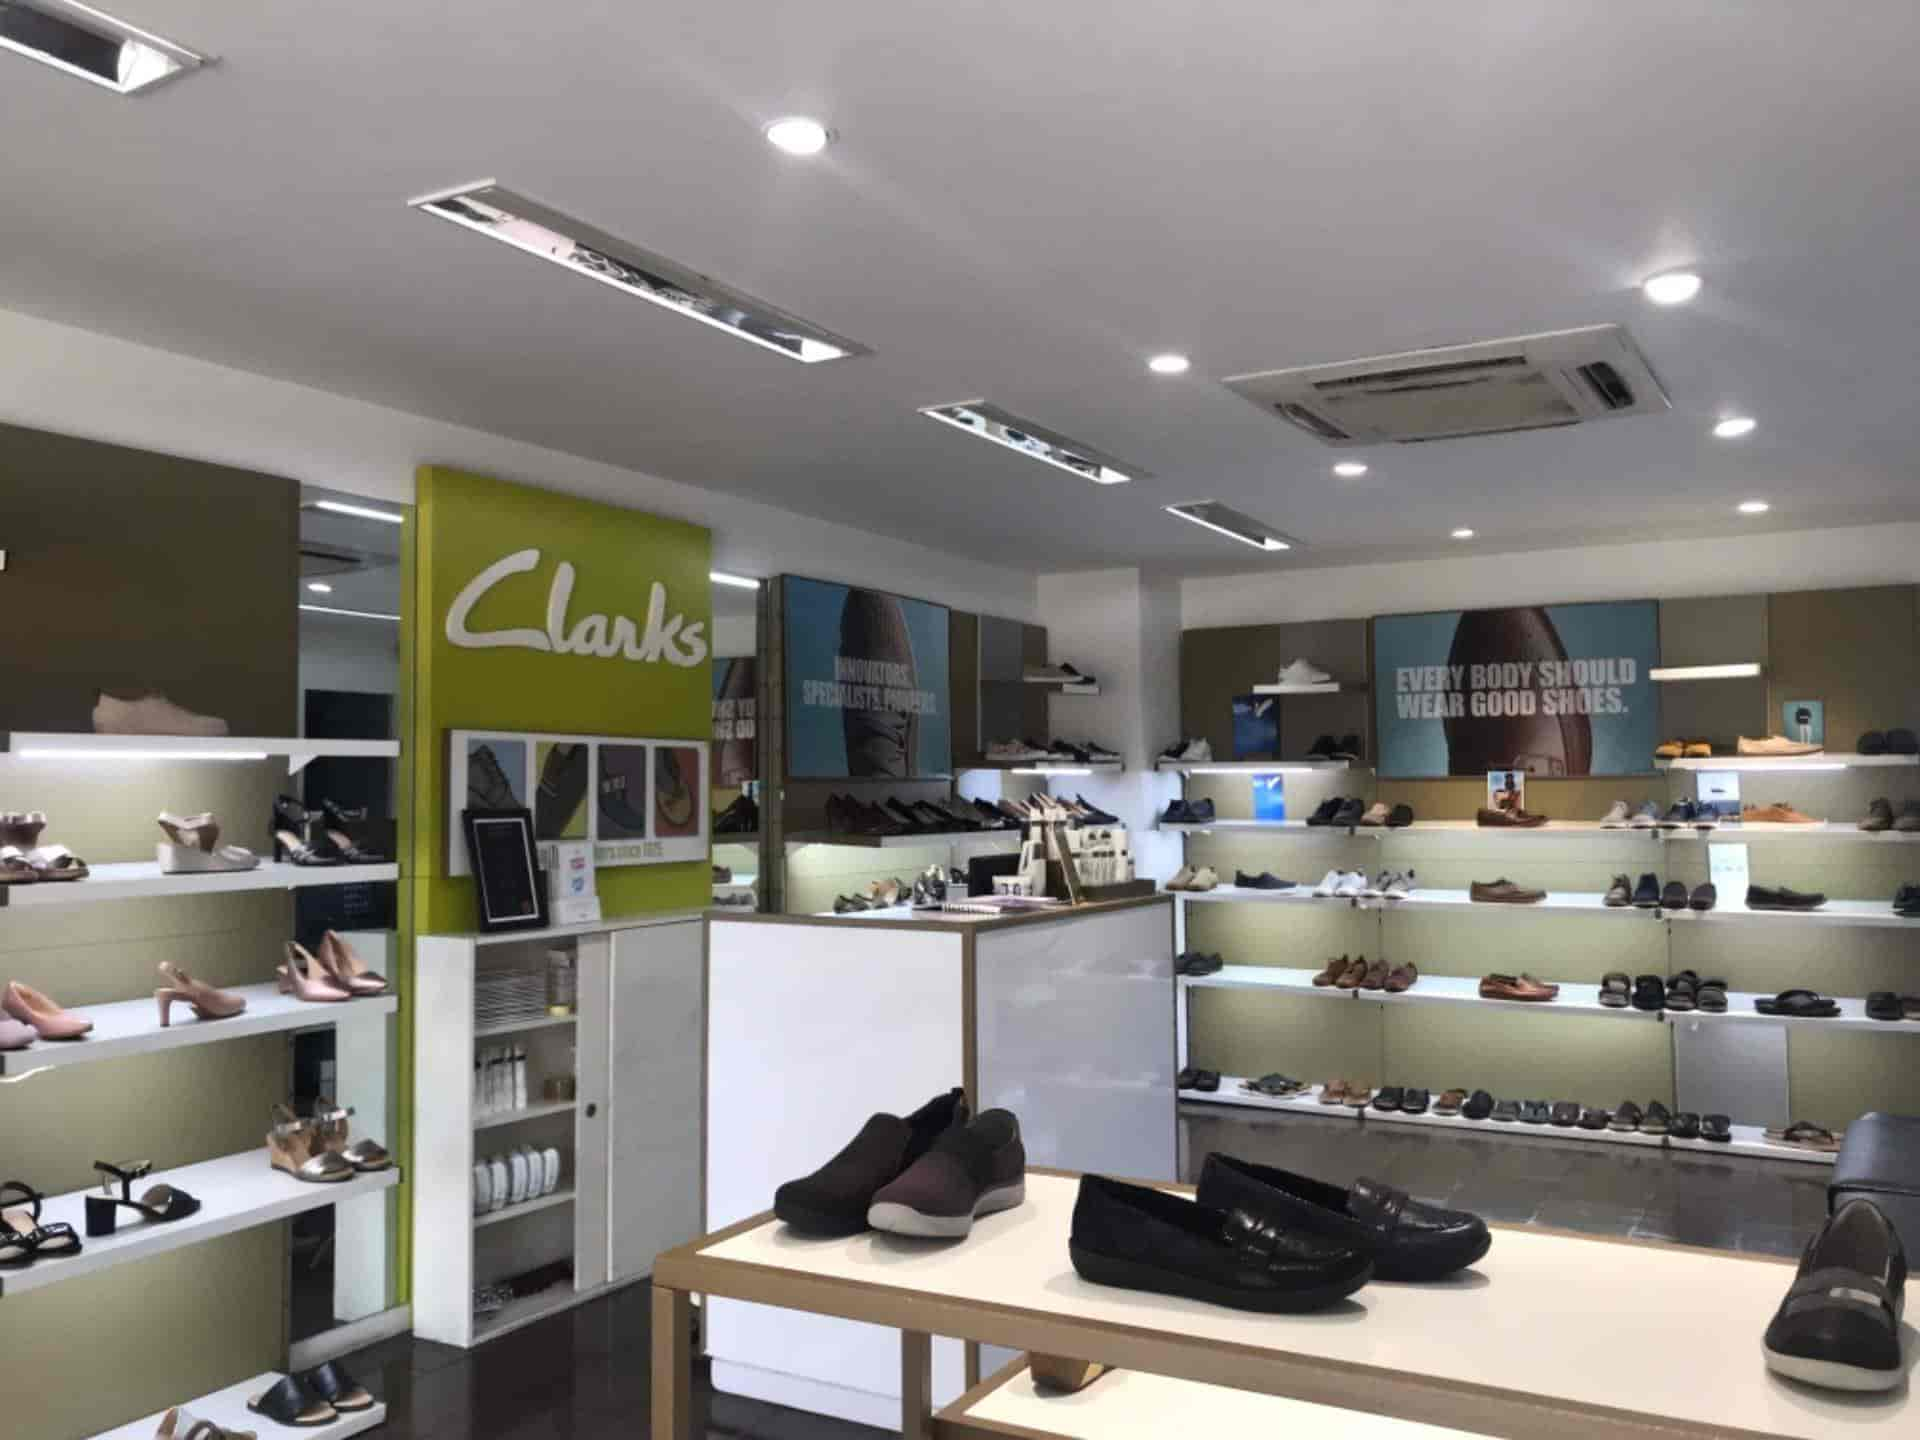 Road Justdial Shoe Dealers Ahmedabad StoreC In Clarks G 0w8nkOPX